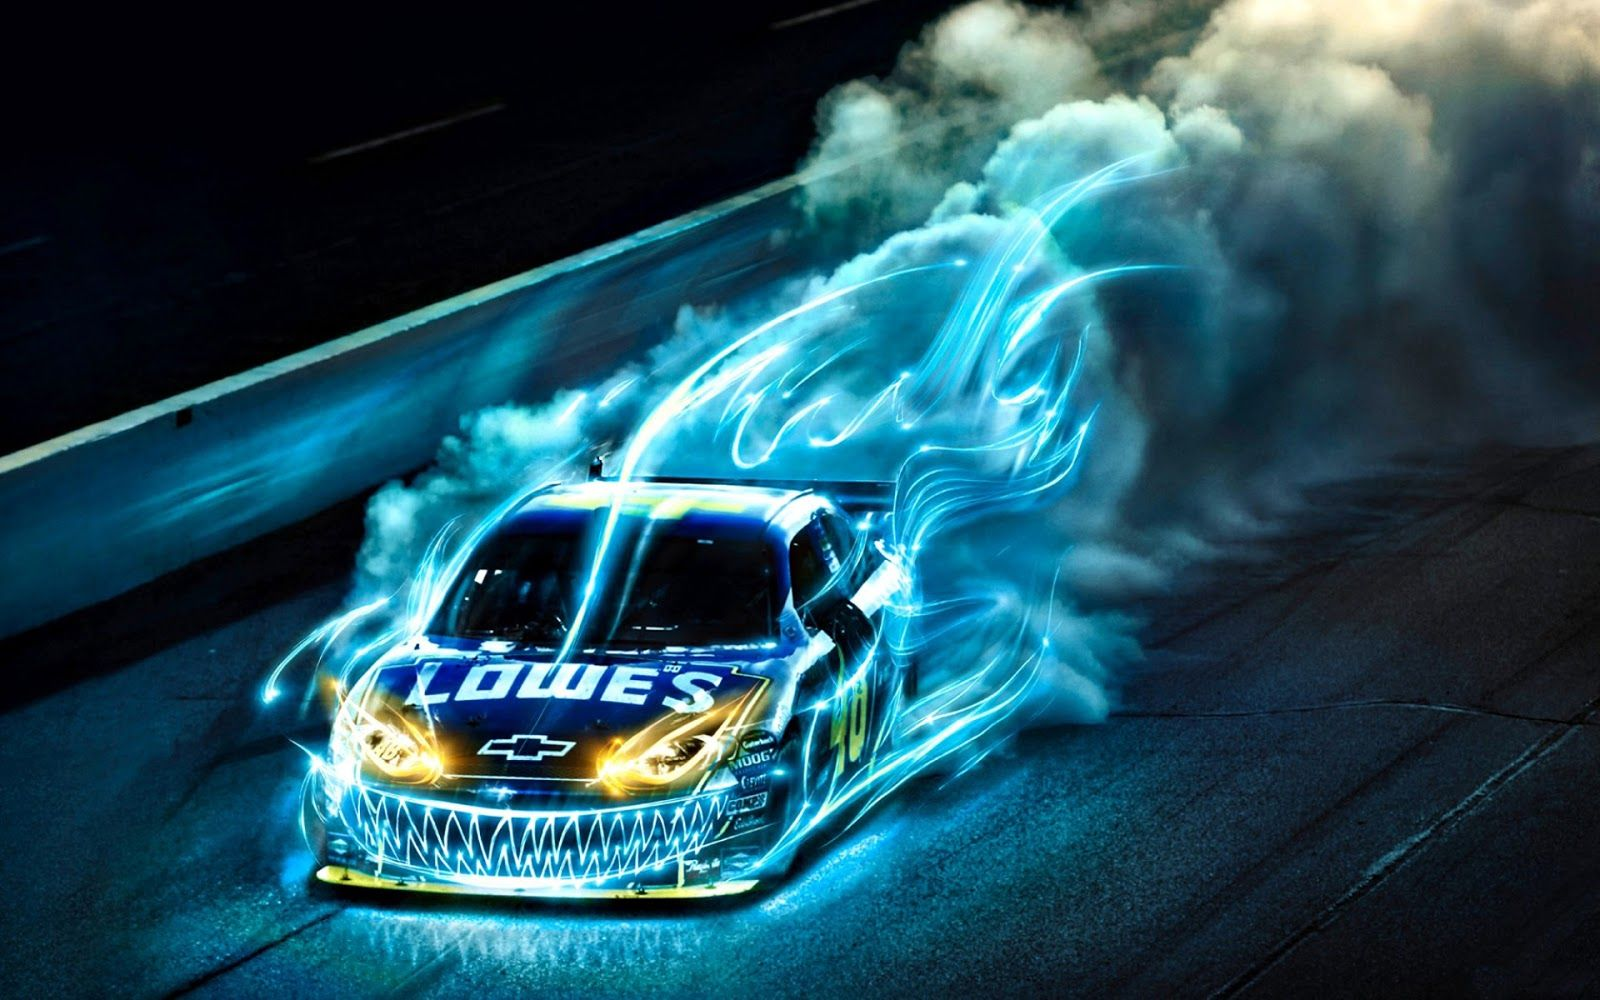 Race Car Wallpaper Google Search Vehicular Awesomeness